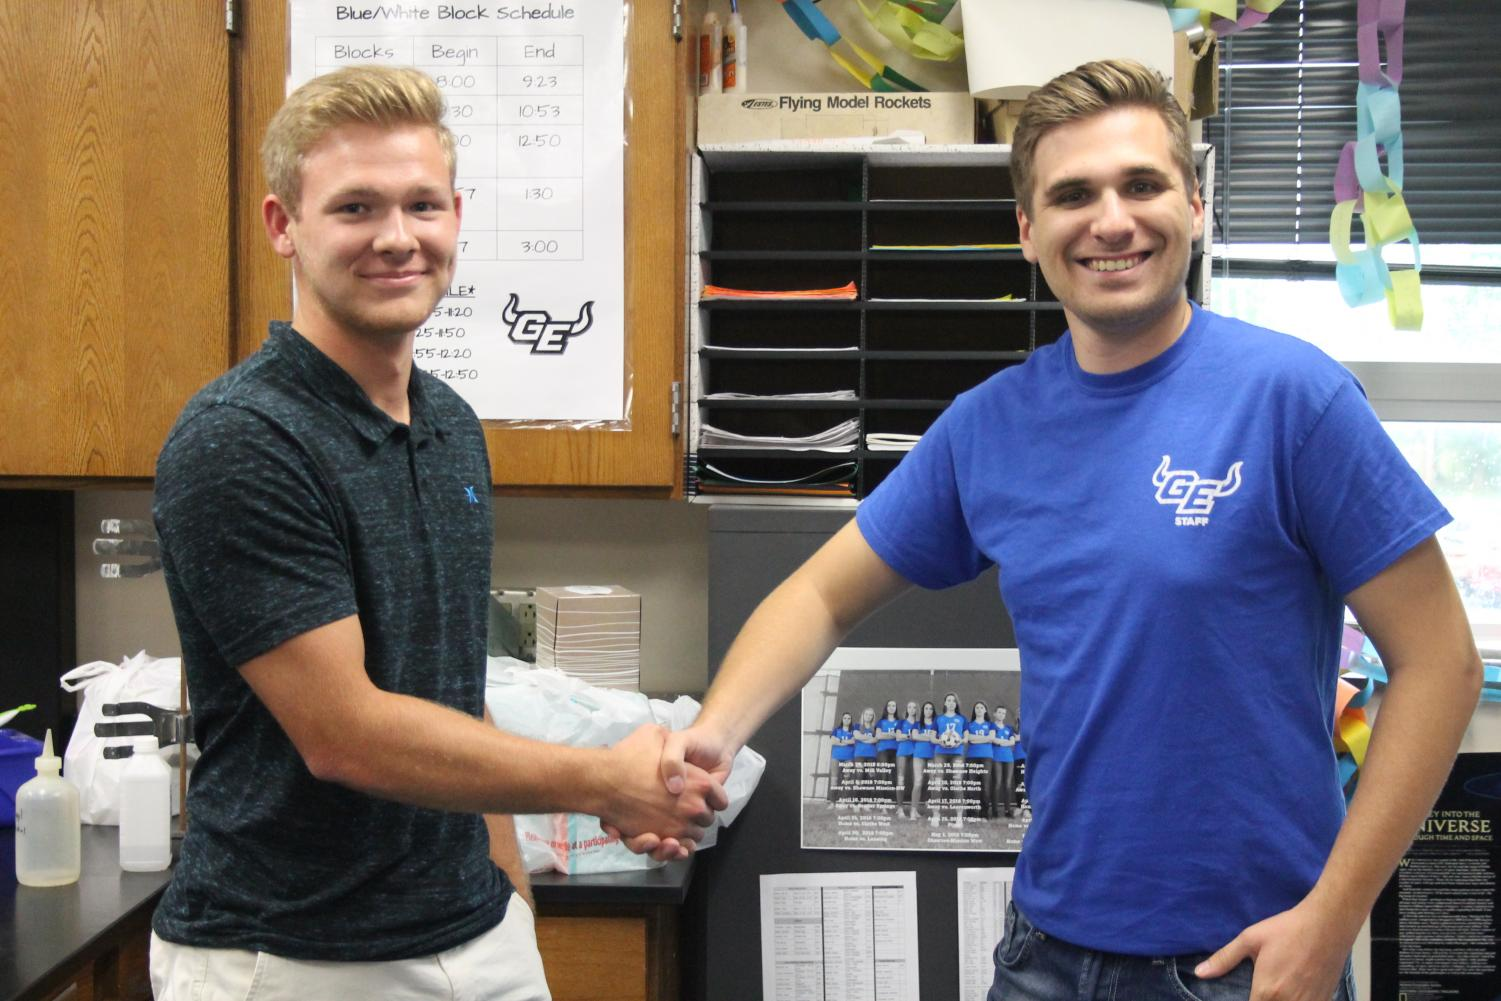 Senior Logan Green and Chemistry teacher Andrew Kipp shaking hands